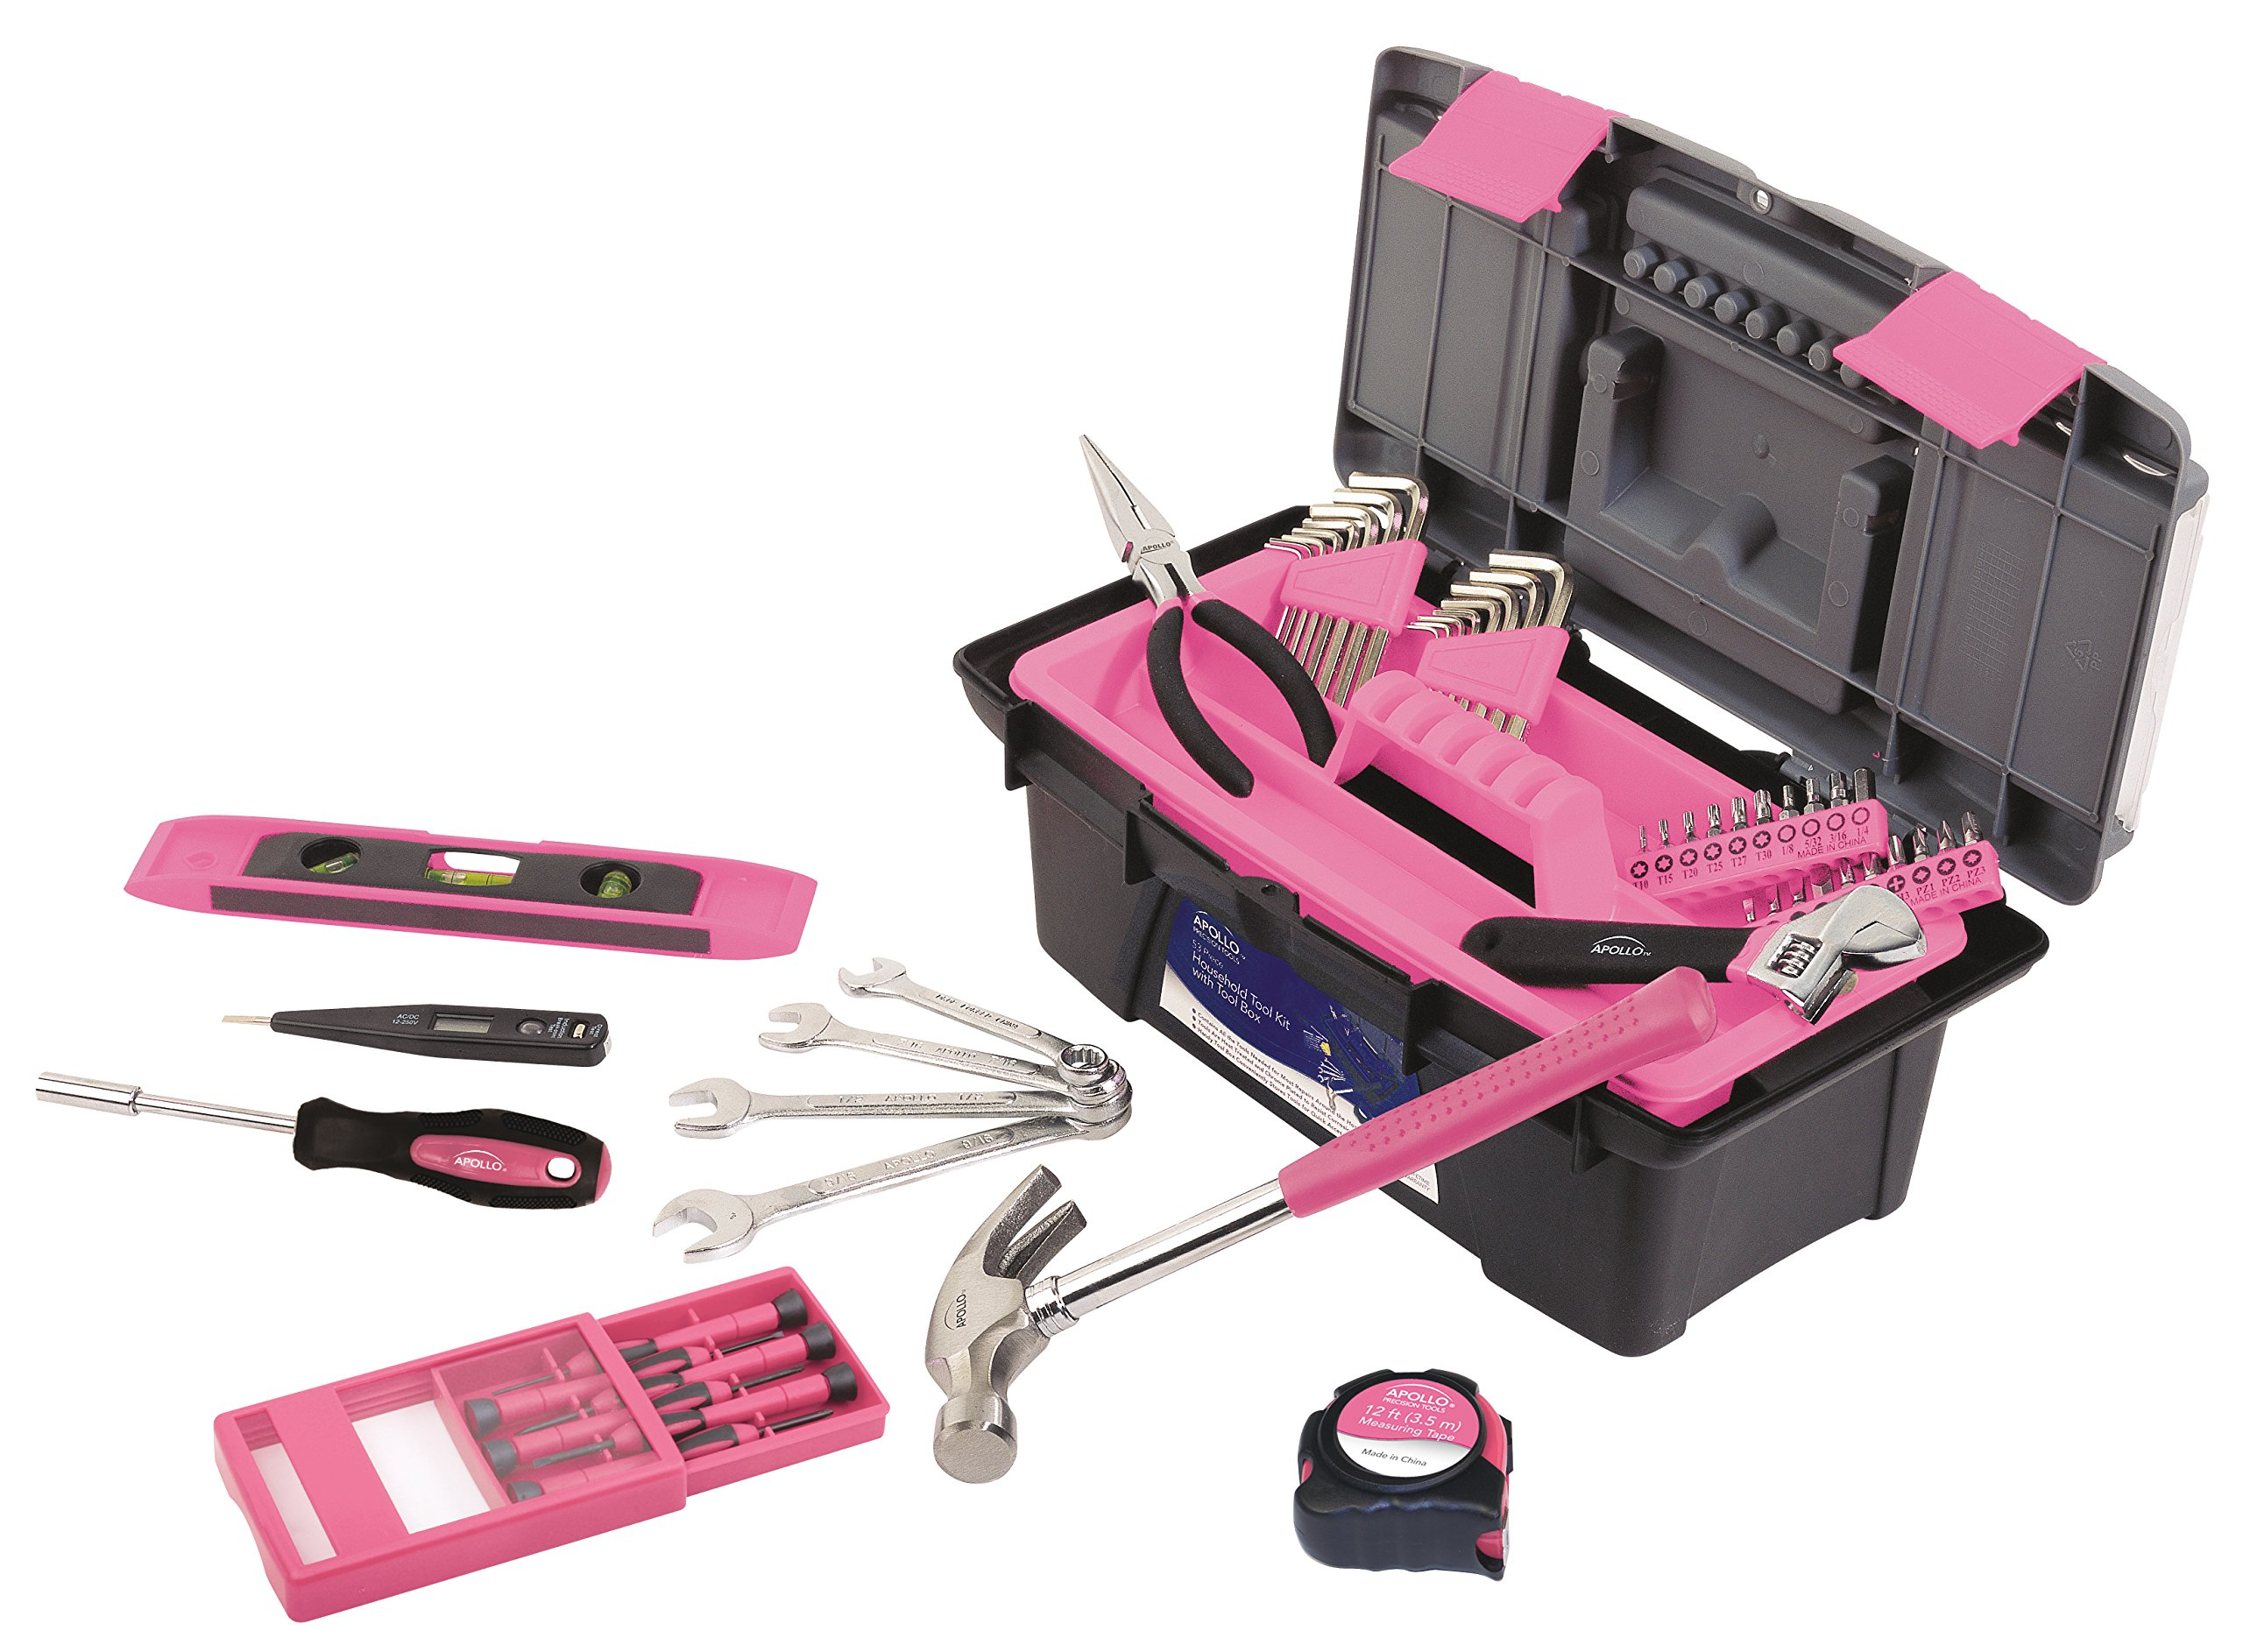 Apollo Tools DT9773P 53 Piece Household Tool Set with Wrenches, Precision Screwdriver Set and Most Reached for Hand Tools in Handy Tool Box Pink Ribbon by Apollo Tools